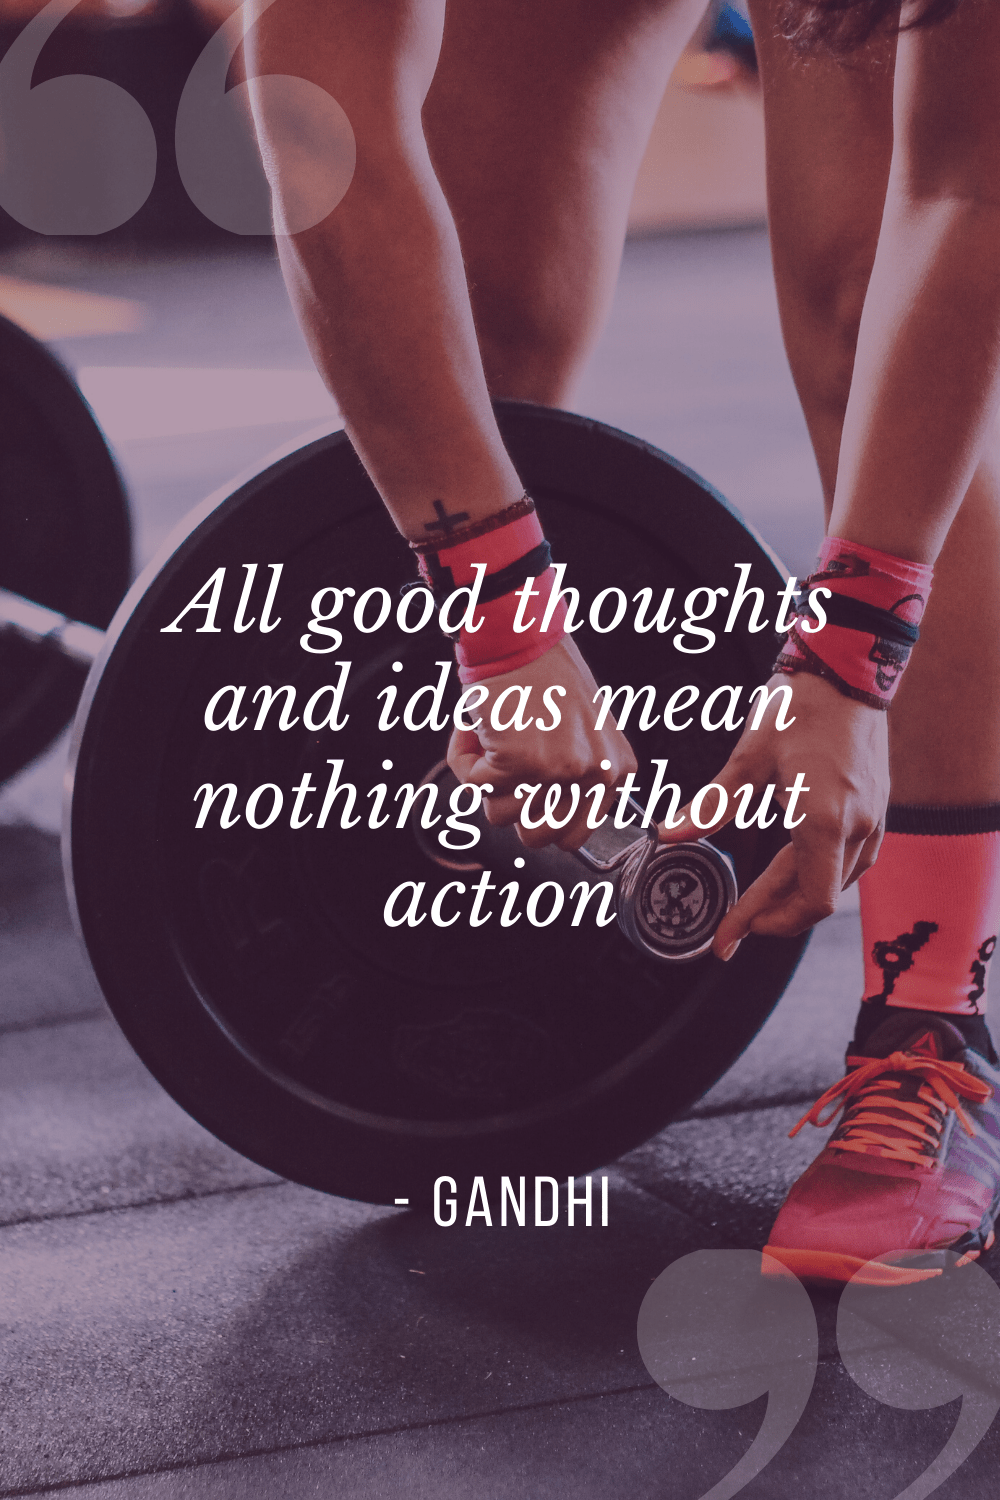 """All good thoughts and ideas mean nothing without action"", Gandhi"